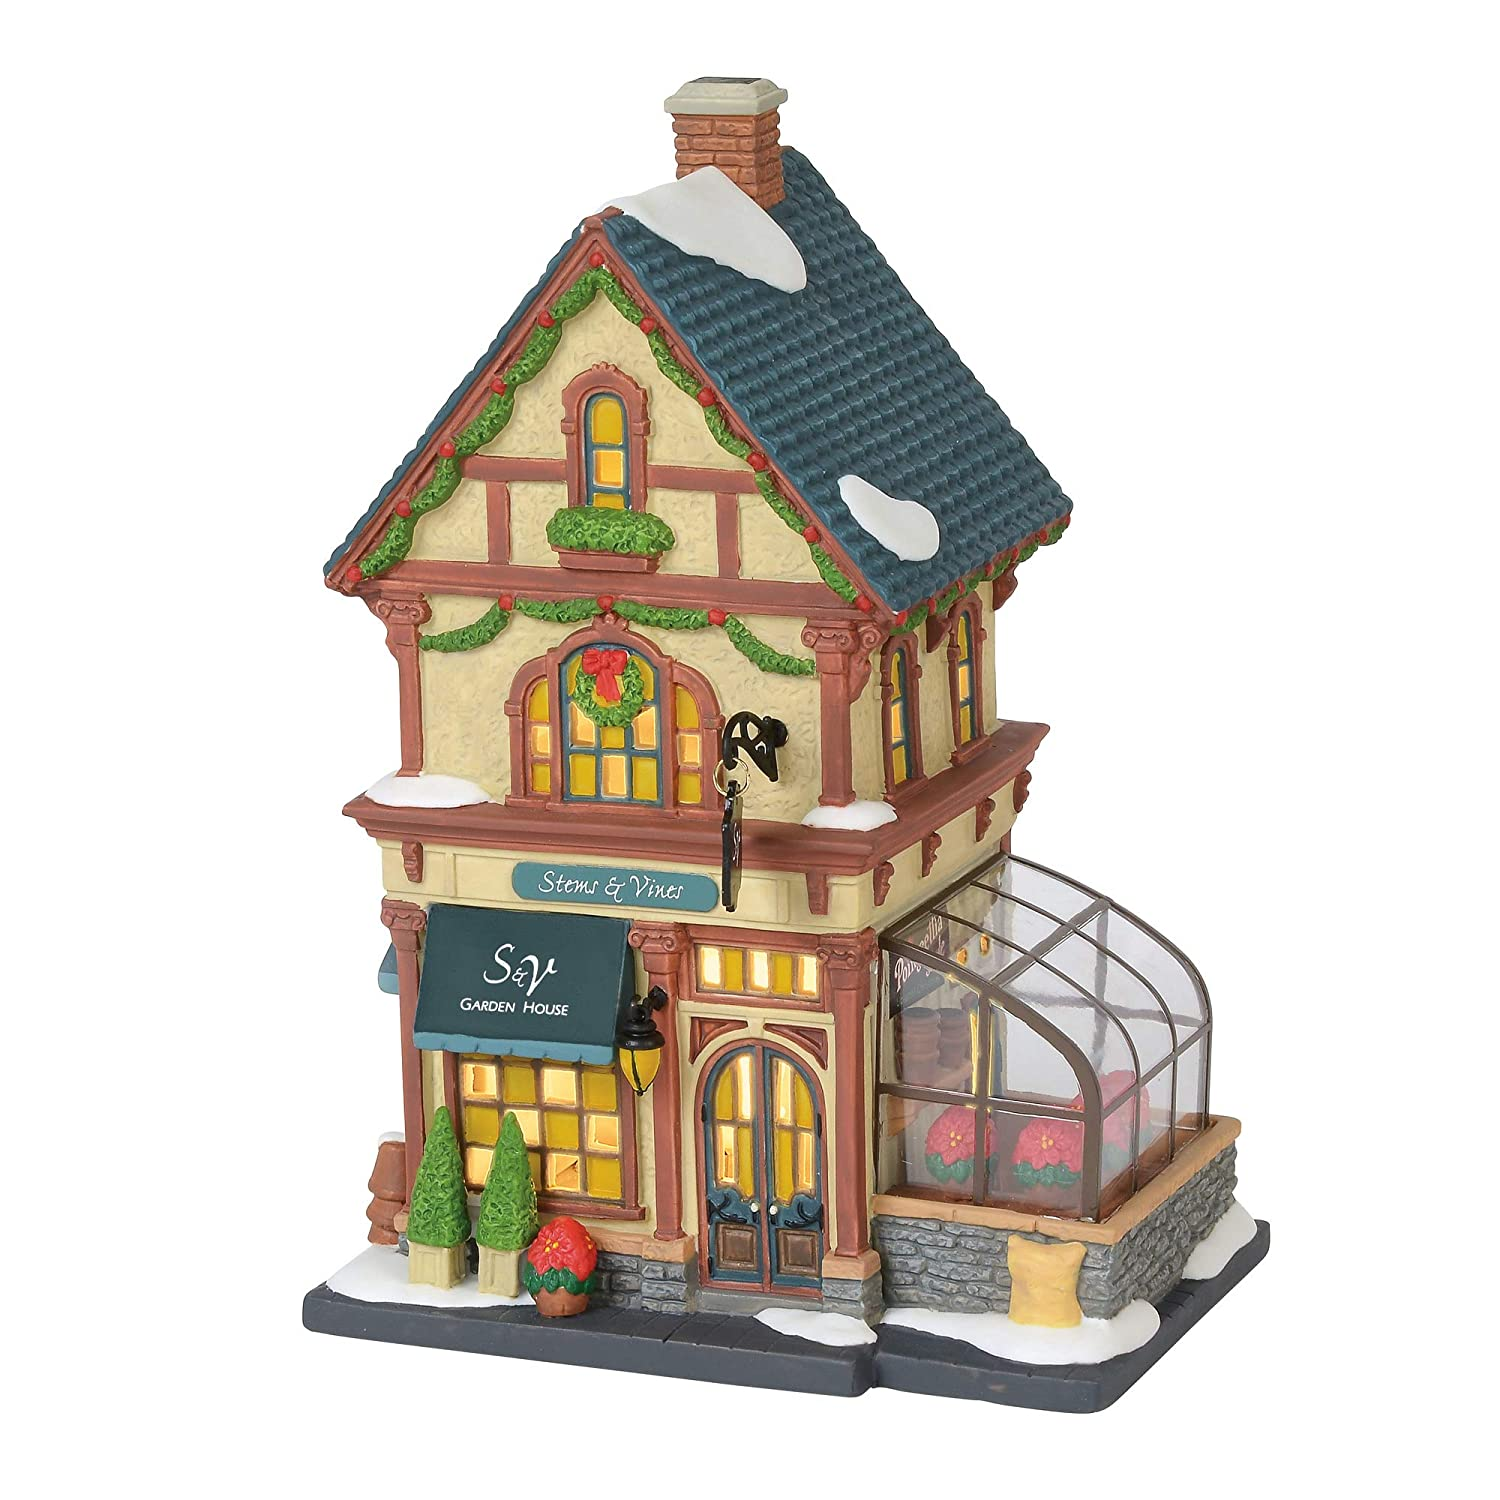 "Department 56 Christmas in The City Village Stems and Vines Garden House Lit Building, 8.75"", Multicolor"